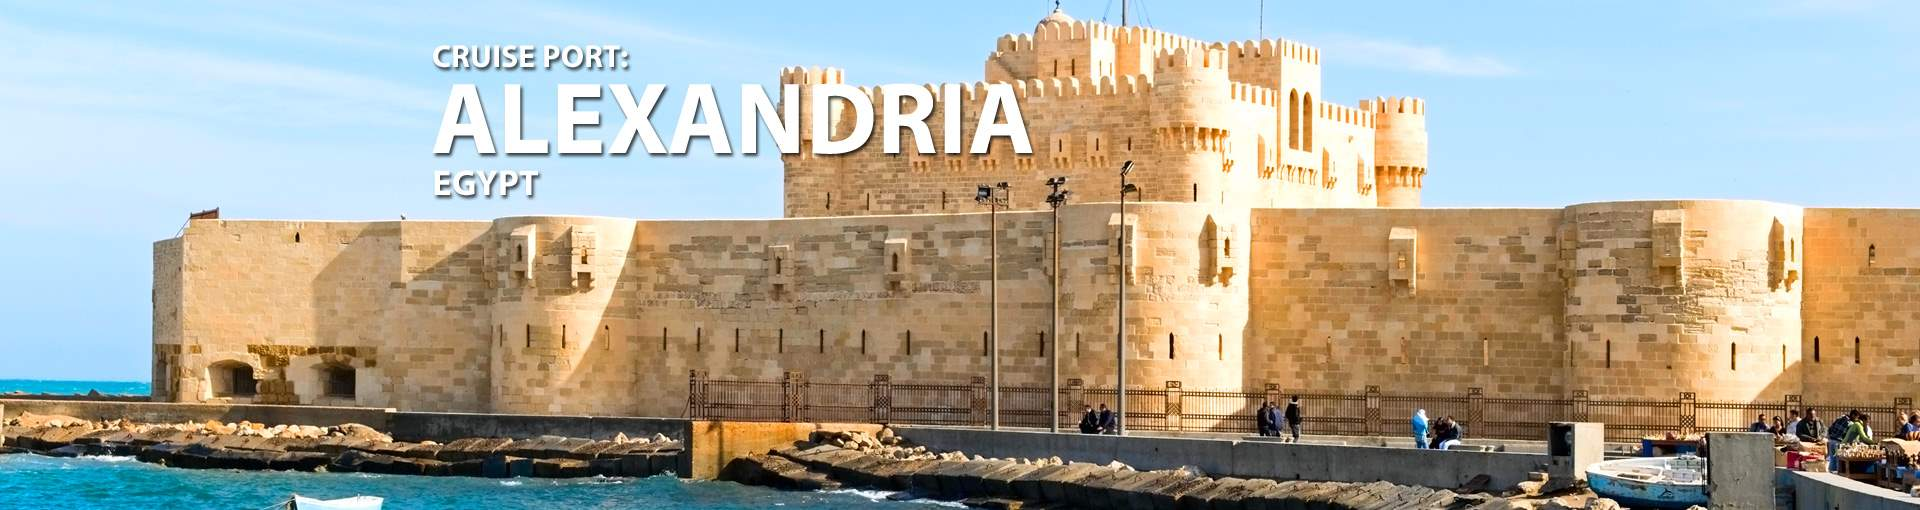 Cruises to Alexandria, Egypt